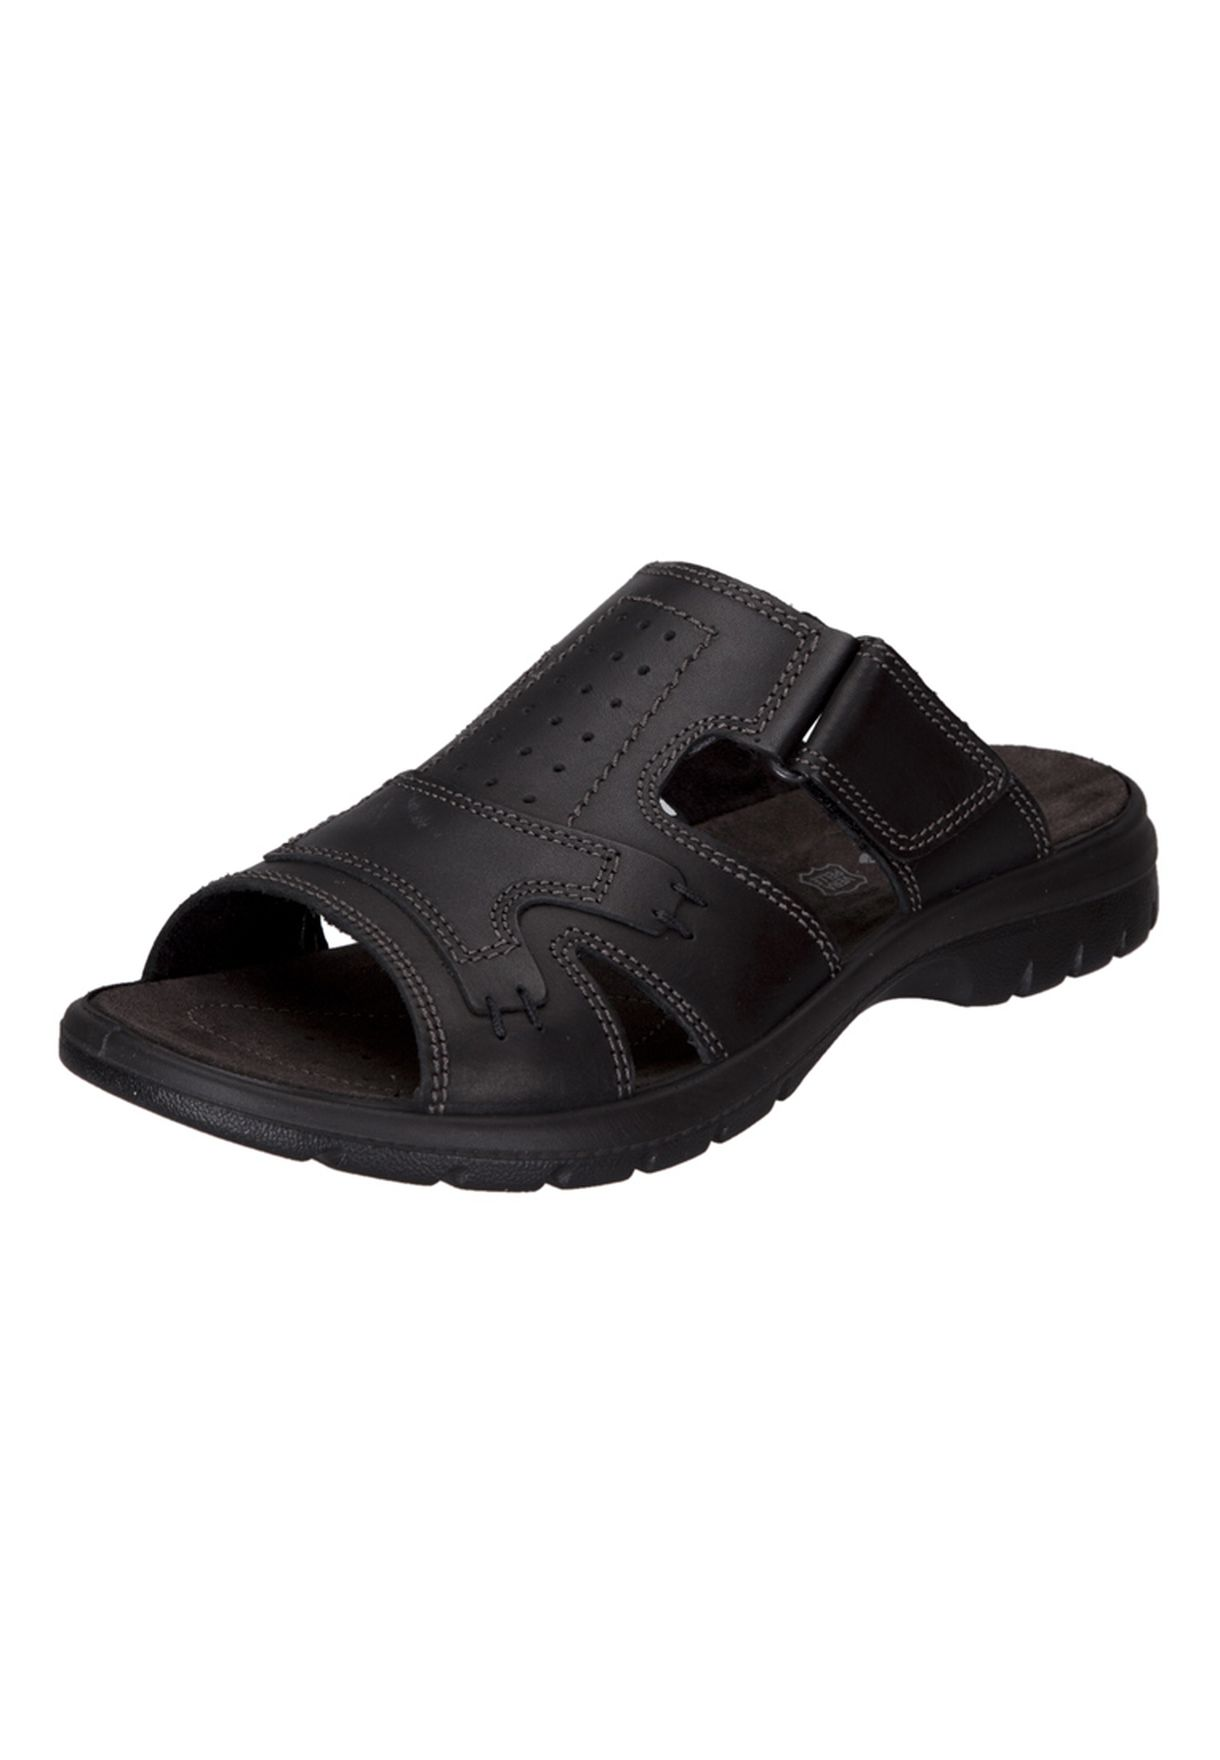 b957662ef2e4 Shop Imac black Leather Dress Sandals for Men in UAE - IM078SH48ERF